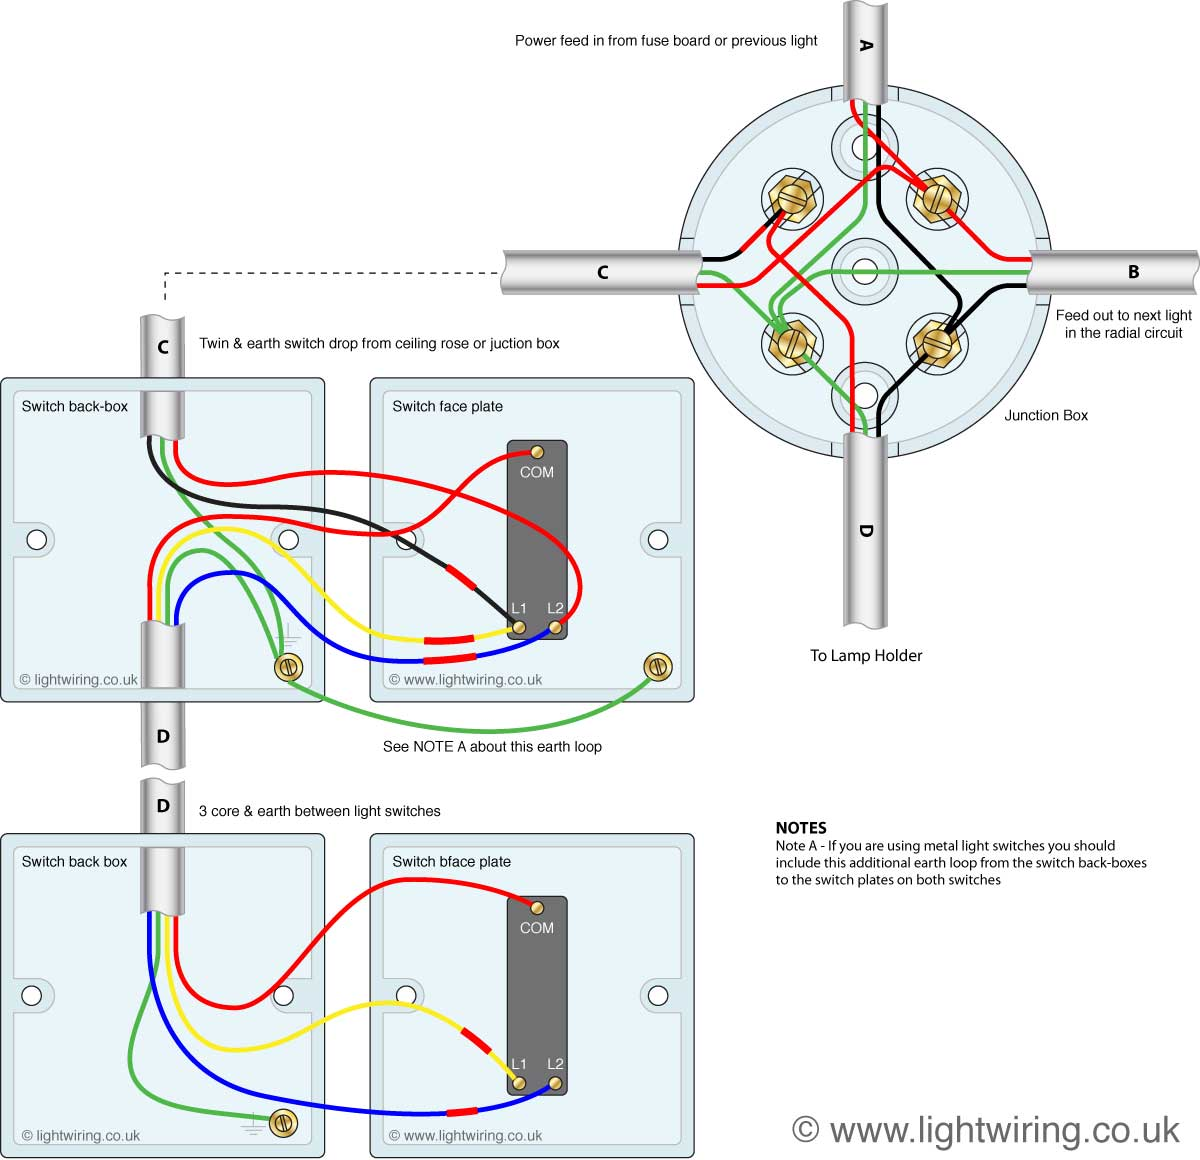 3 way switching from junction box 2 way switch (3 wire system, old cable colours) light wiring wiring diagram for a 3 way switch with 2 lights at n-0.co